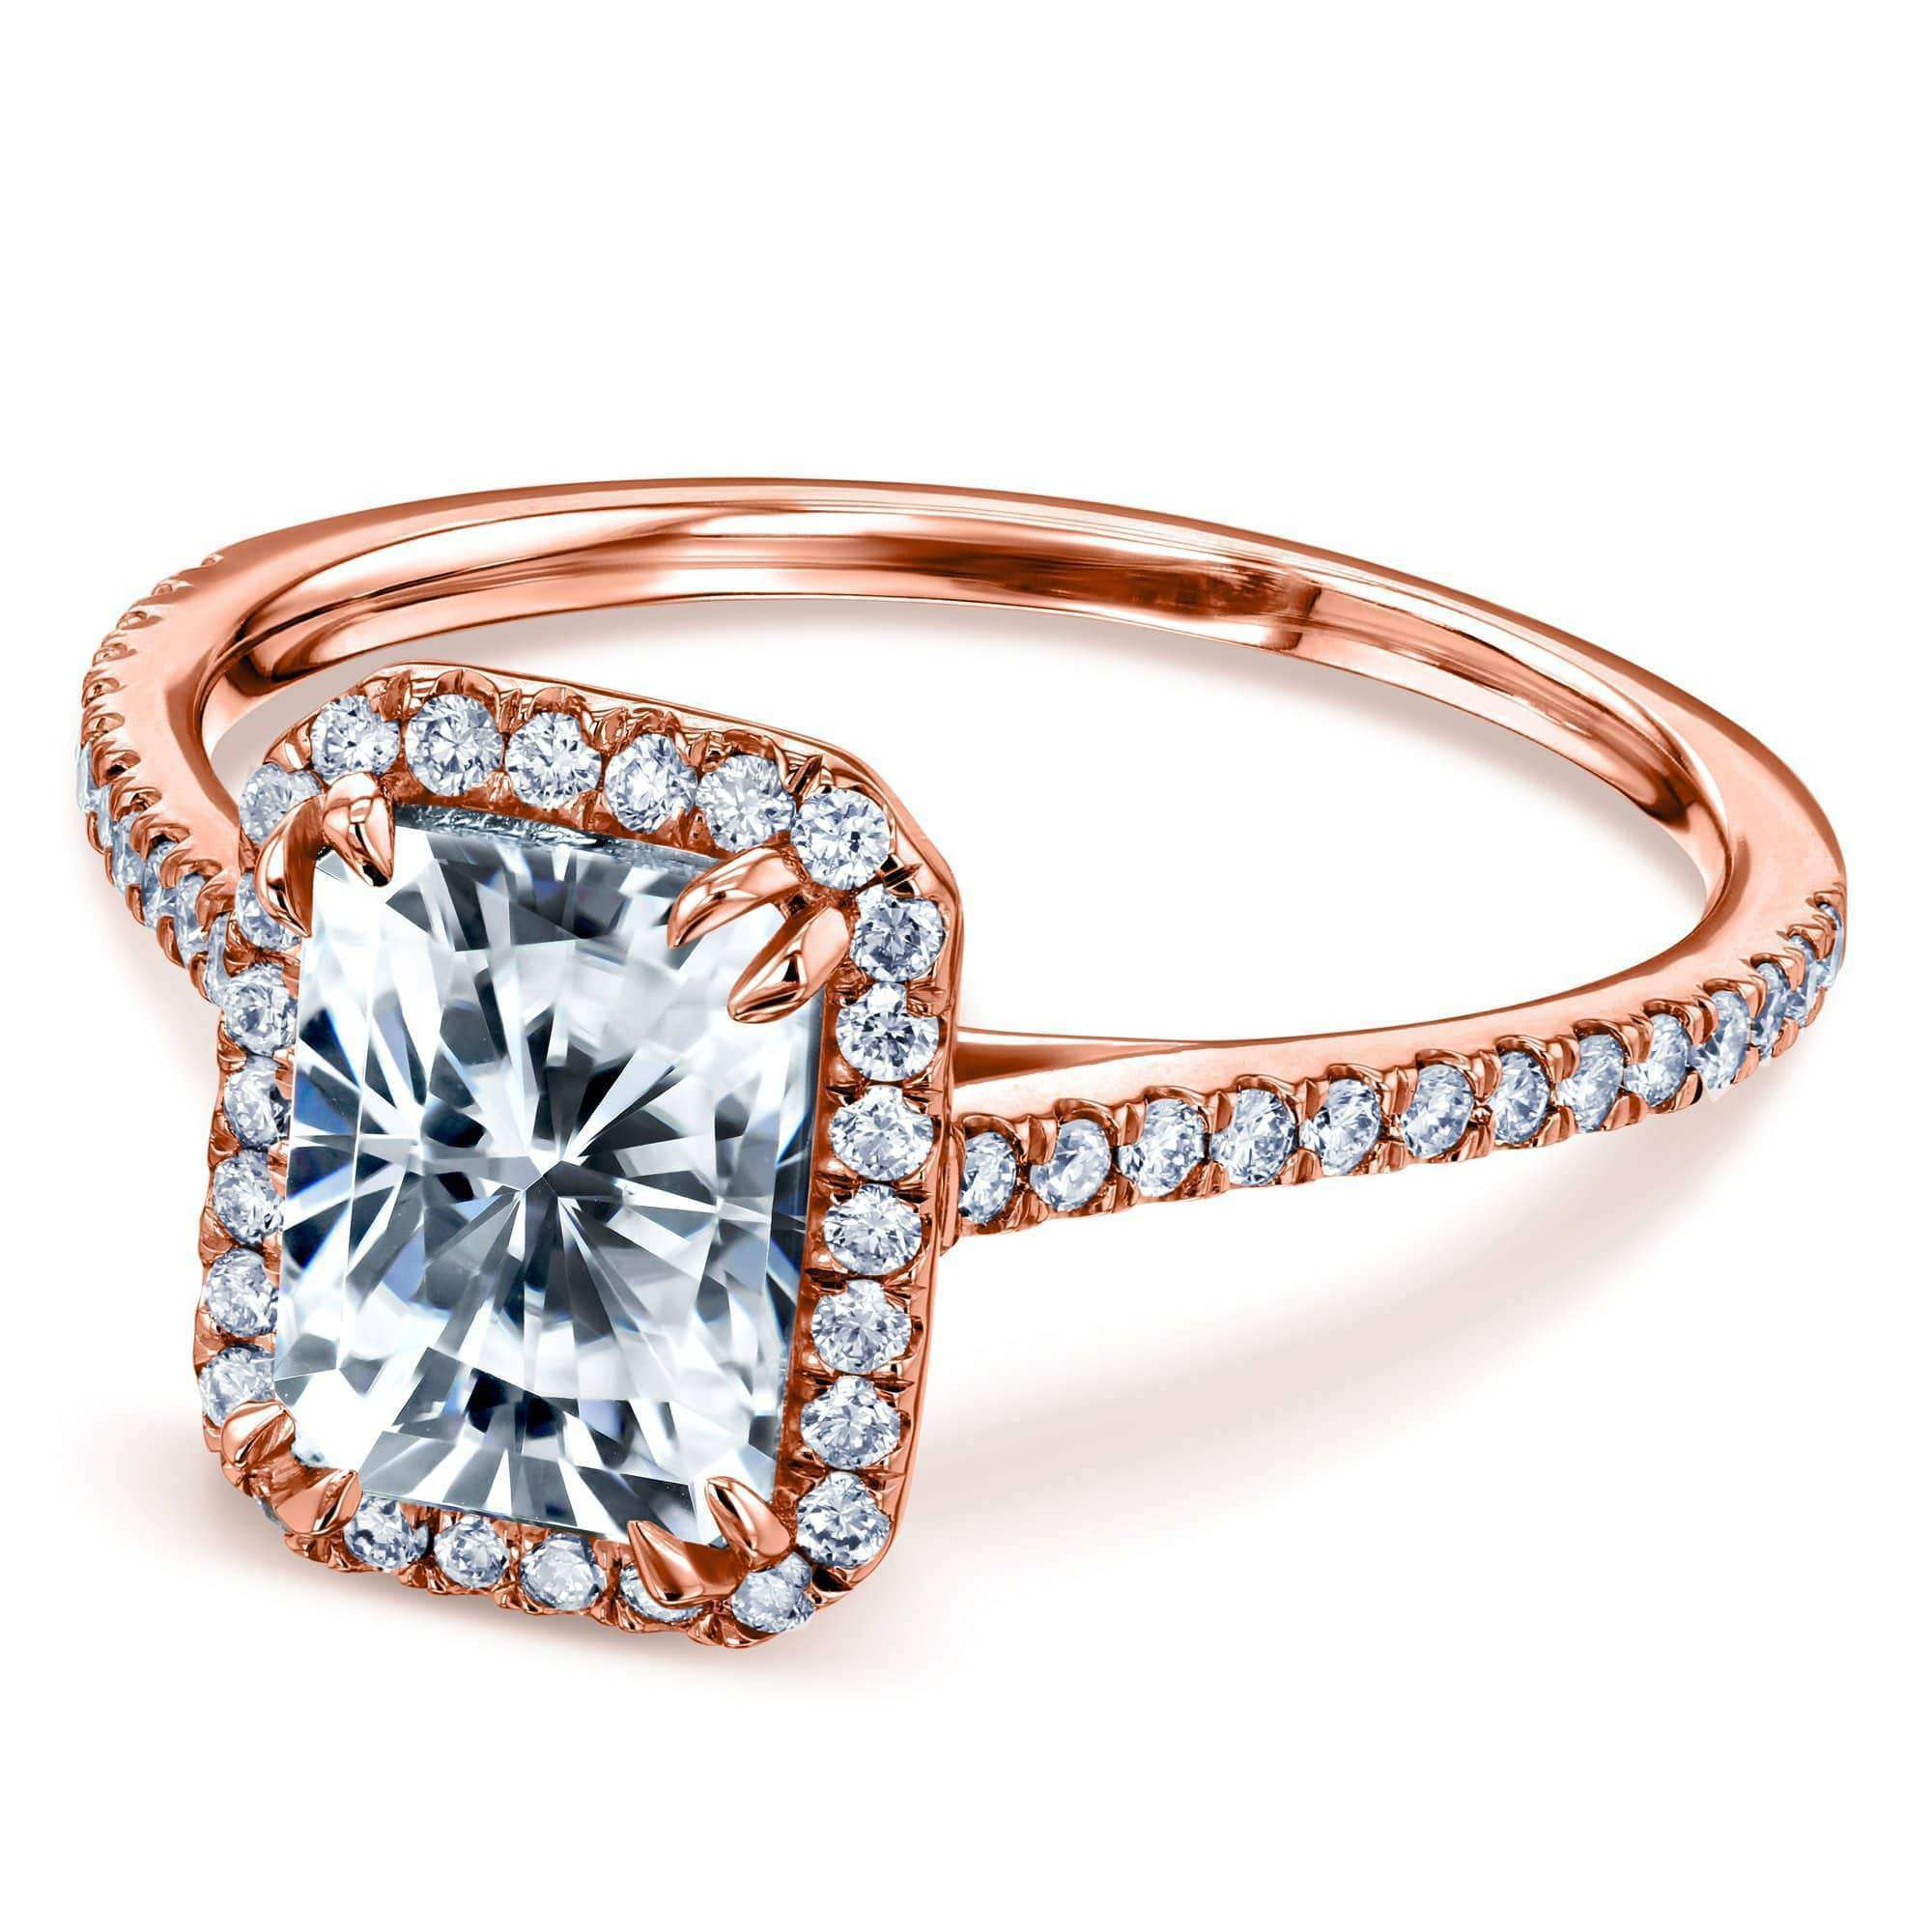 Cheap 1.8ct Radiant Moissanite Ring - rose-gold 11.0 Kobelli H-I